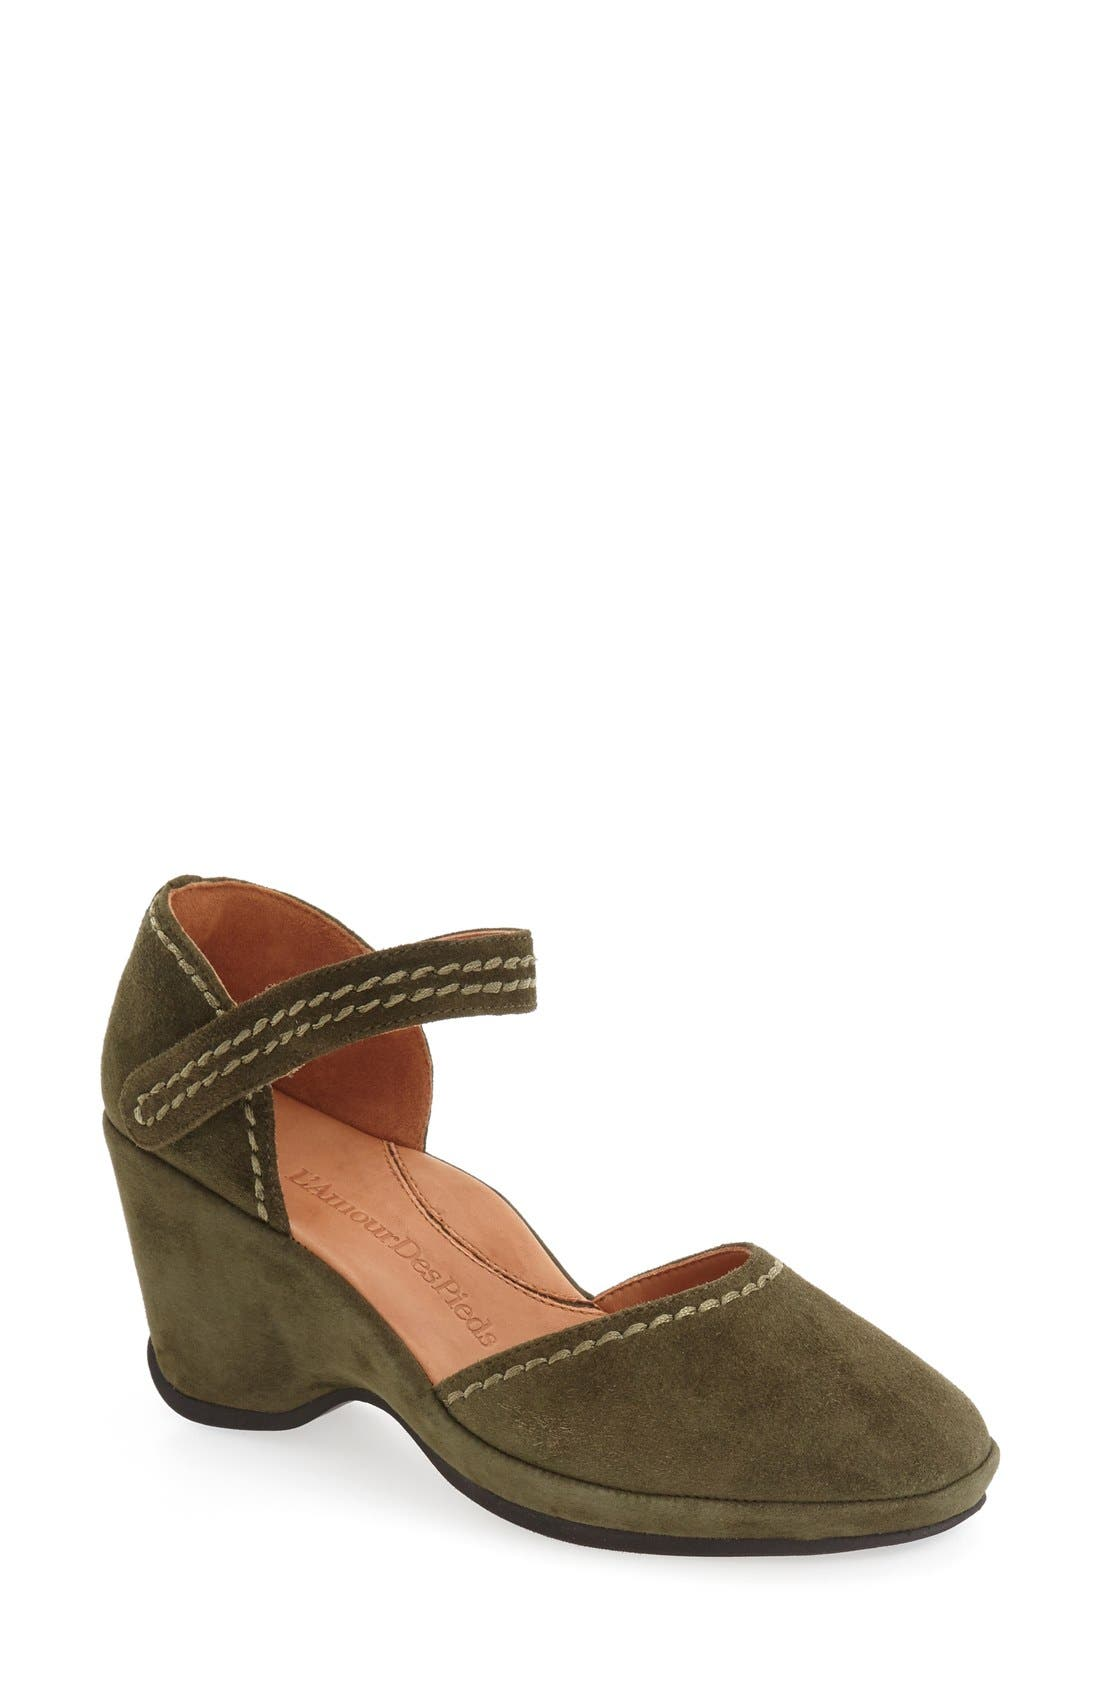 Alternate Image 1 Selected - L'Amourdes Pieds'Orva' Wedge Sandal (Women)